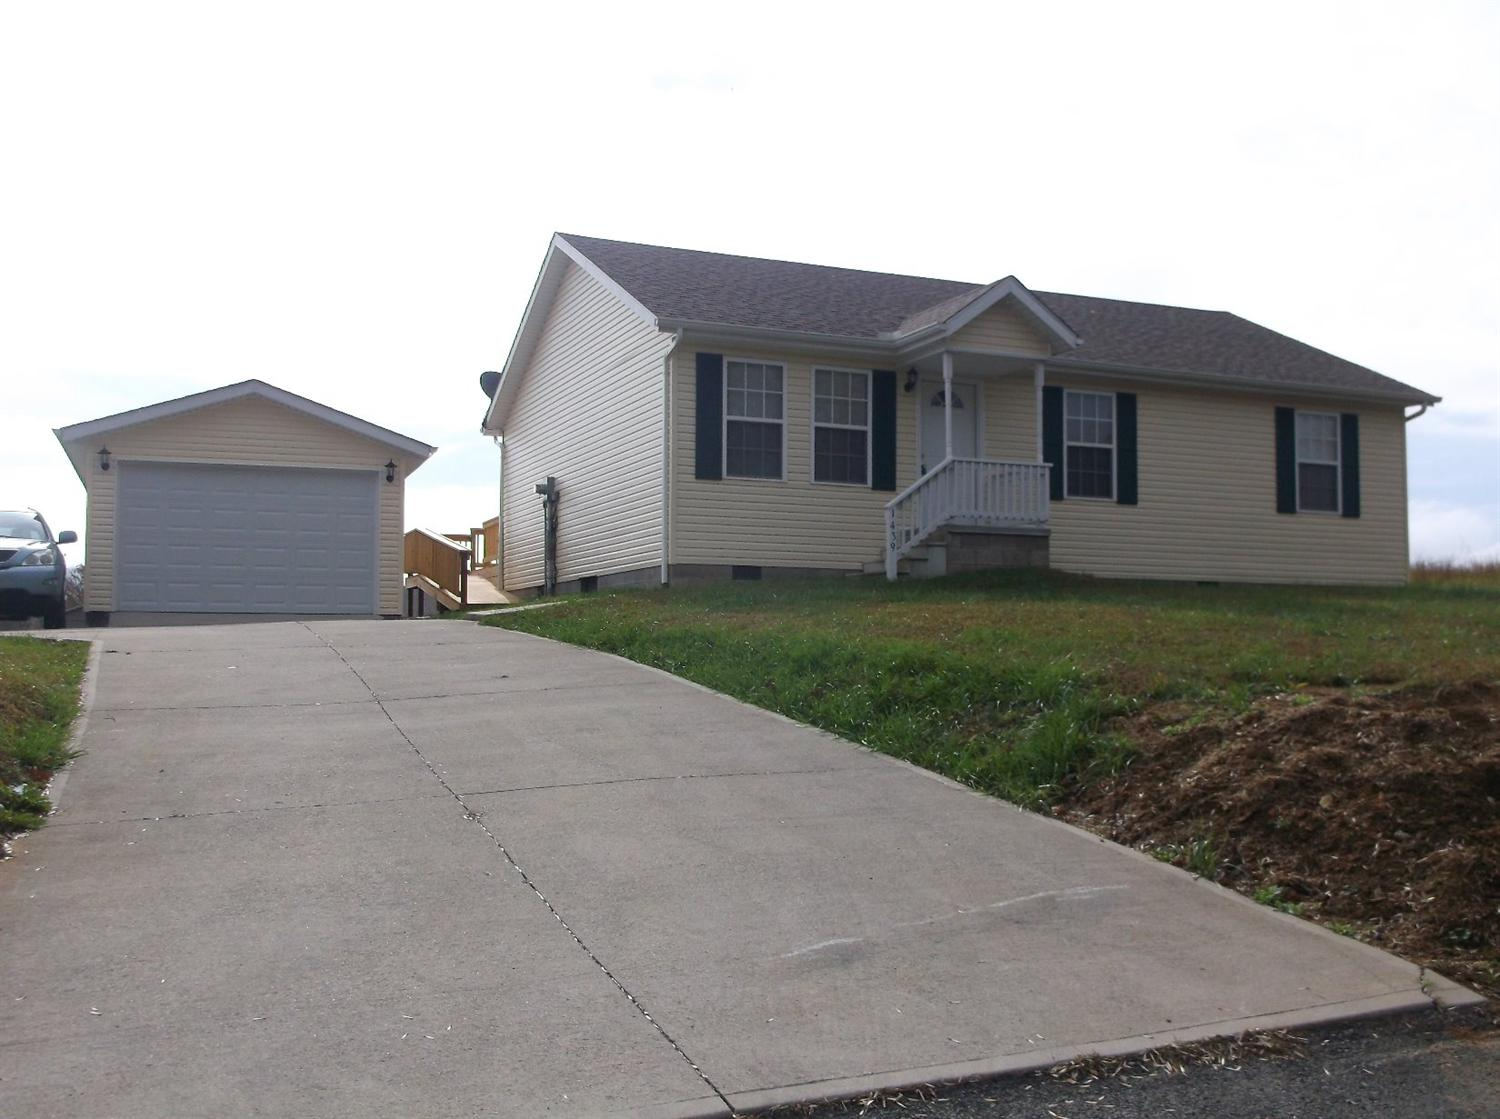 1439 Shephard Rd, Nancy, Kentucky 42544